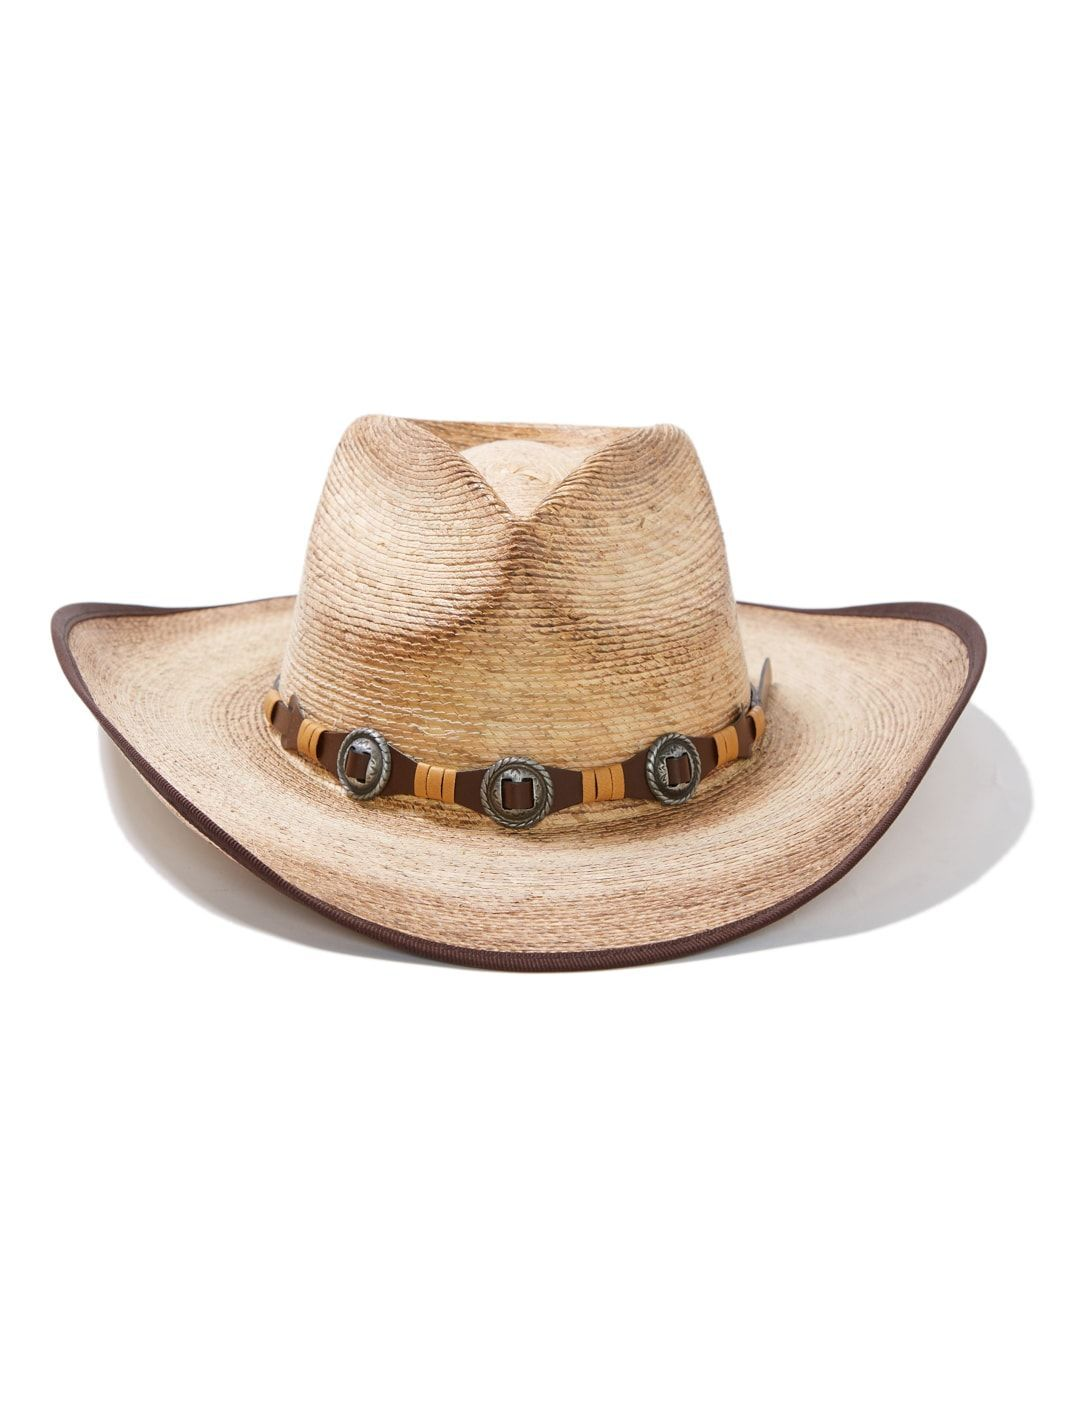 Details. Laurel Raffia Chin Strap Outdoor Hat 5089197b5ecc